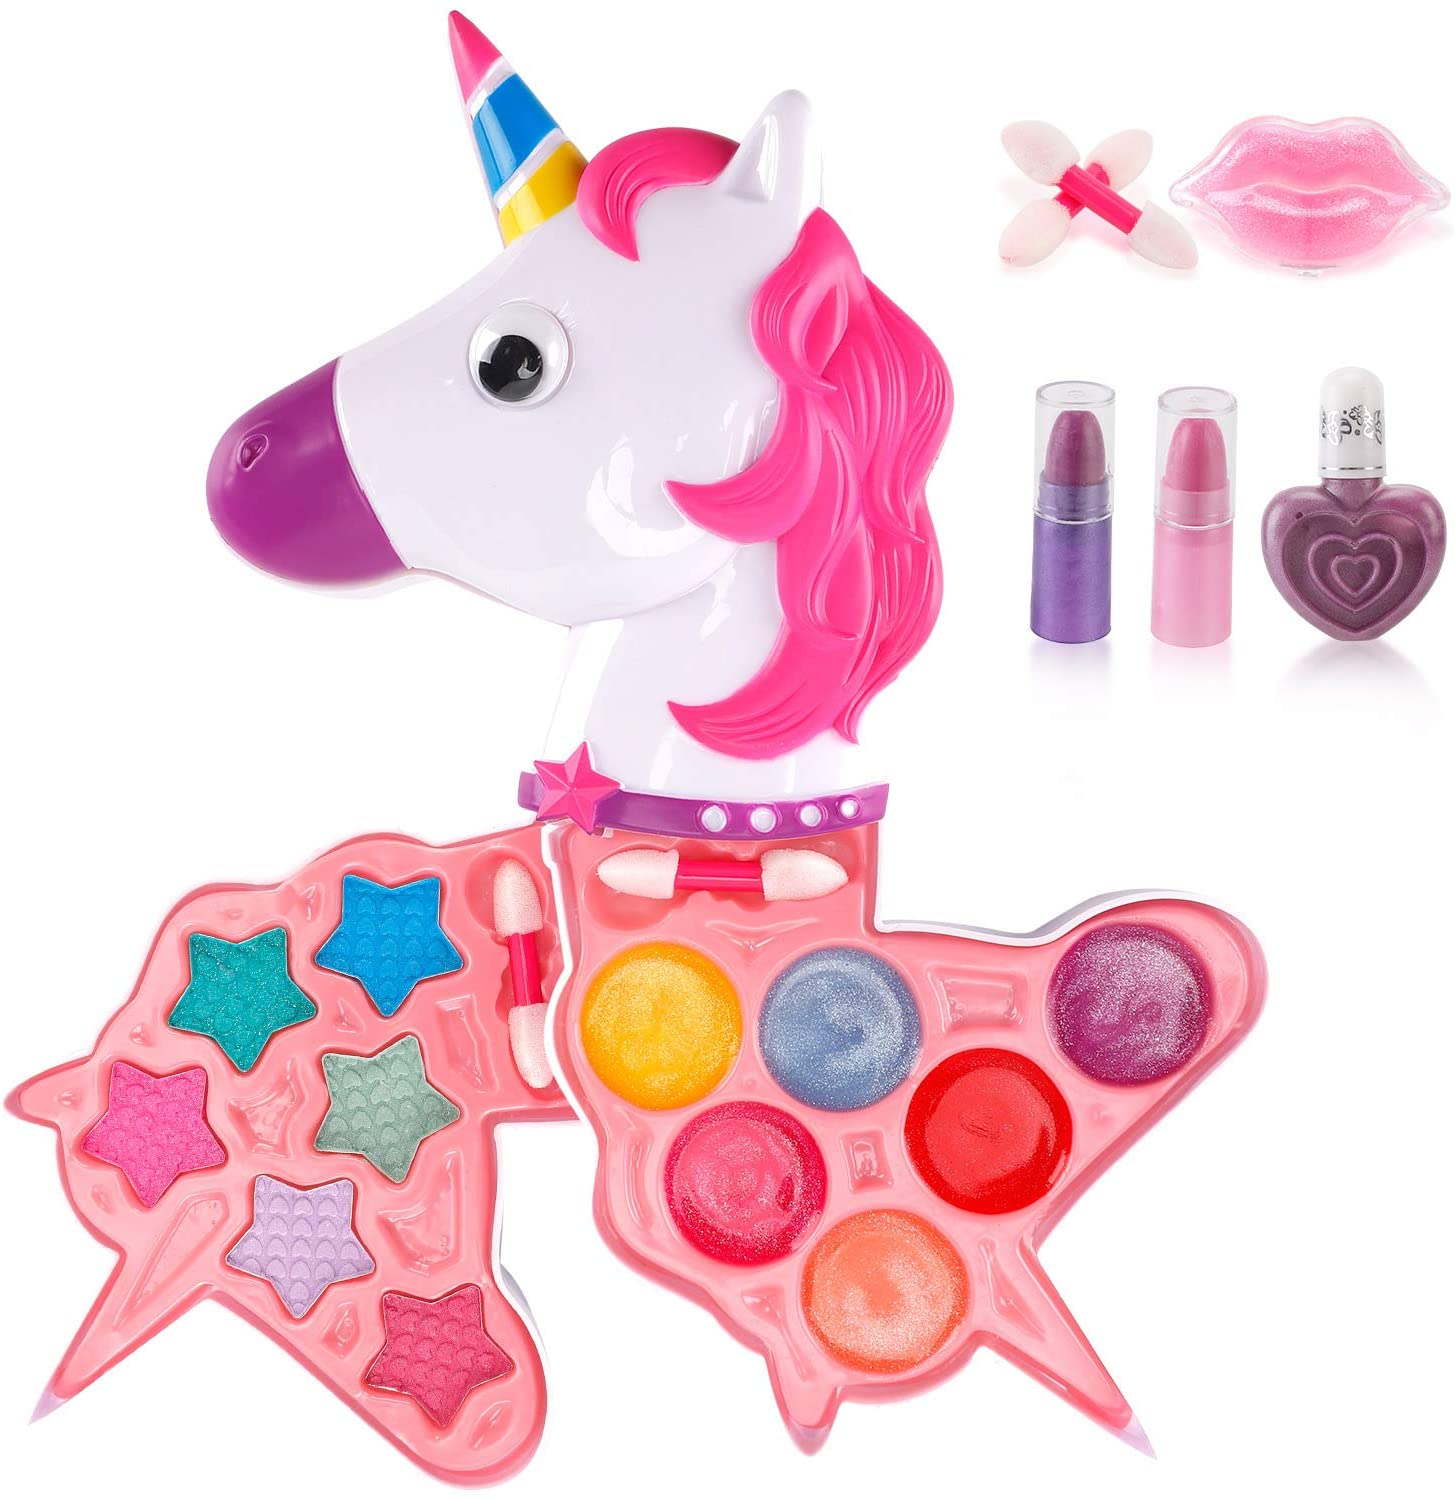 Liberty Imports Petite Girls Cosmetics Play Set - Washable and Non Toxic - Princess Real Makeup Kit with Case - Ideal Gift for Kids (Unicorn)